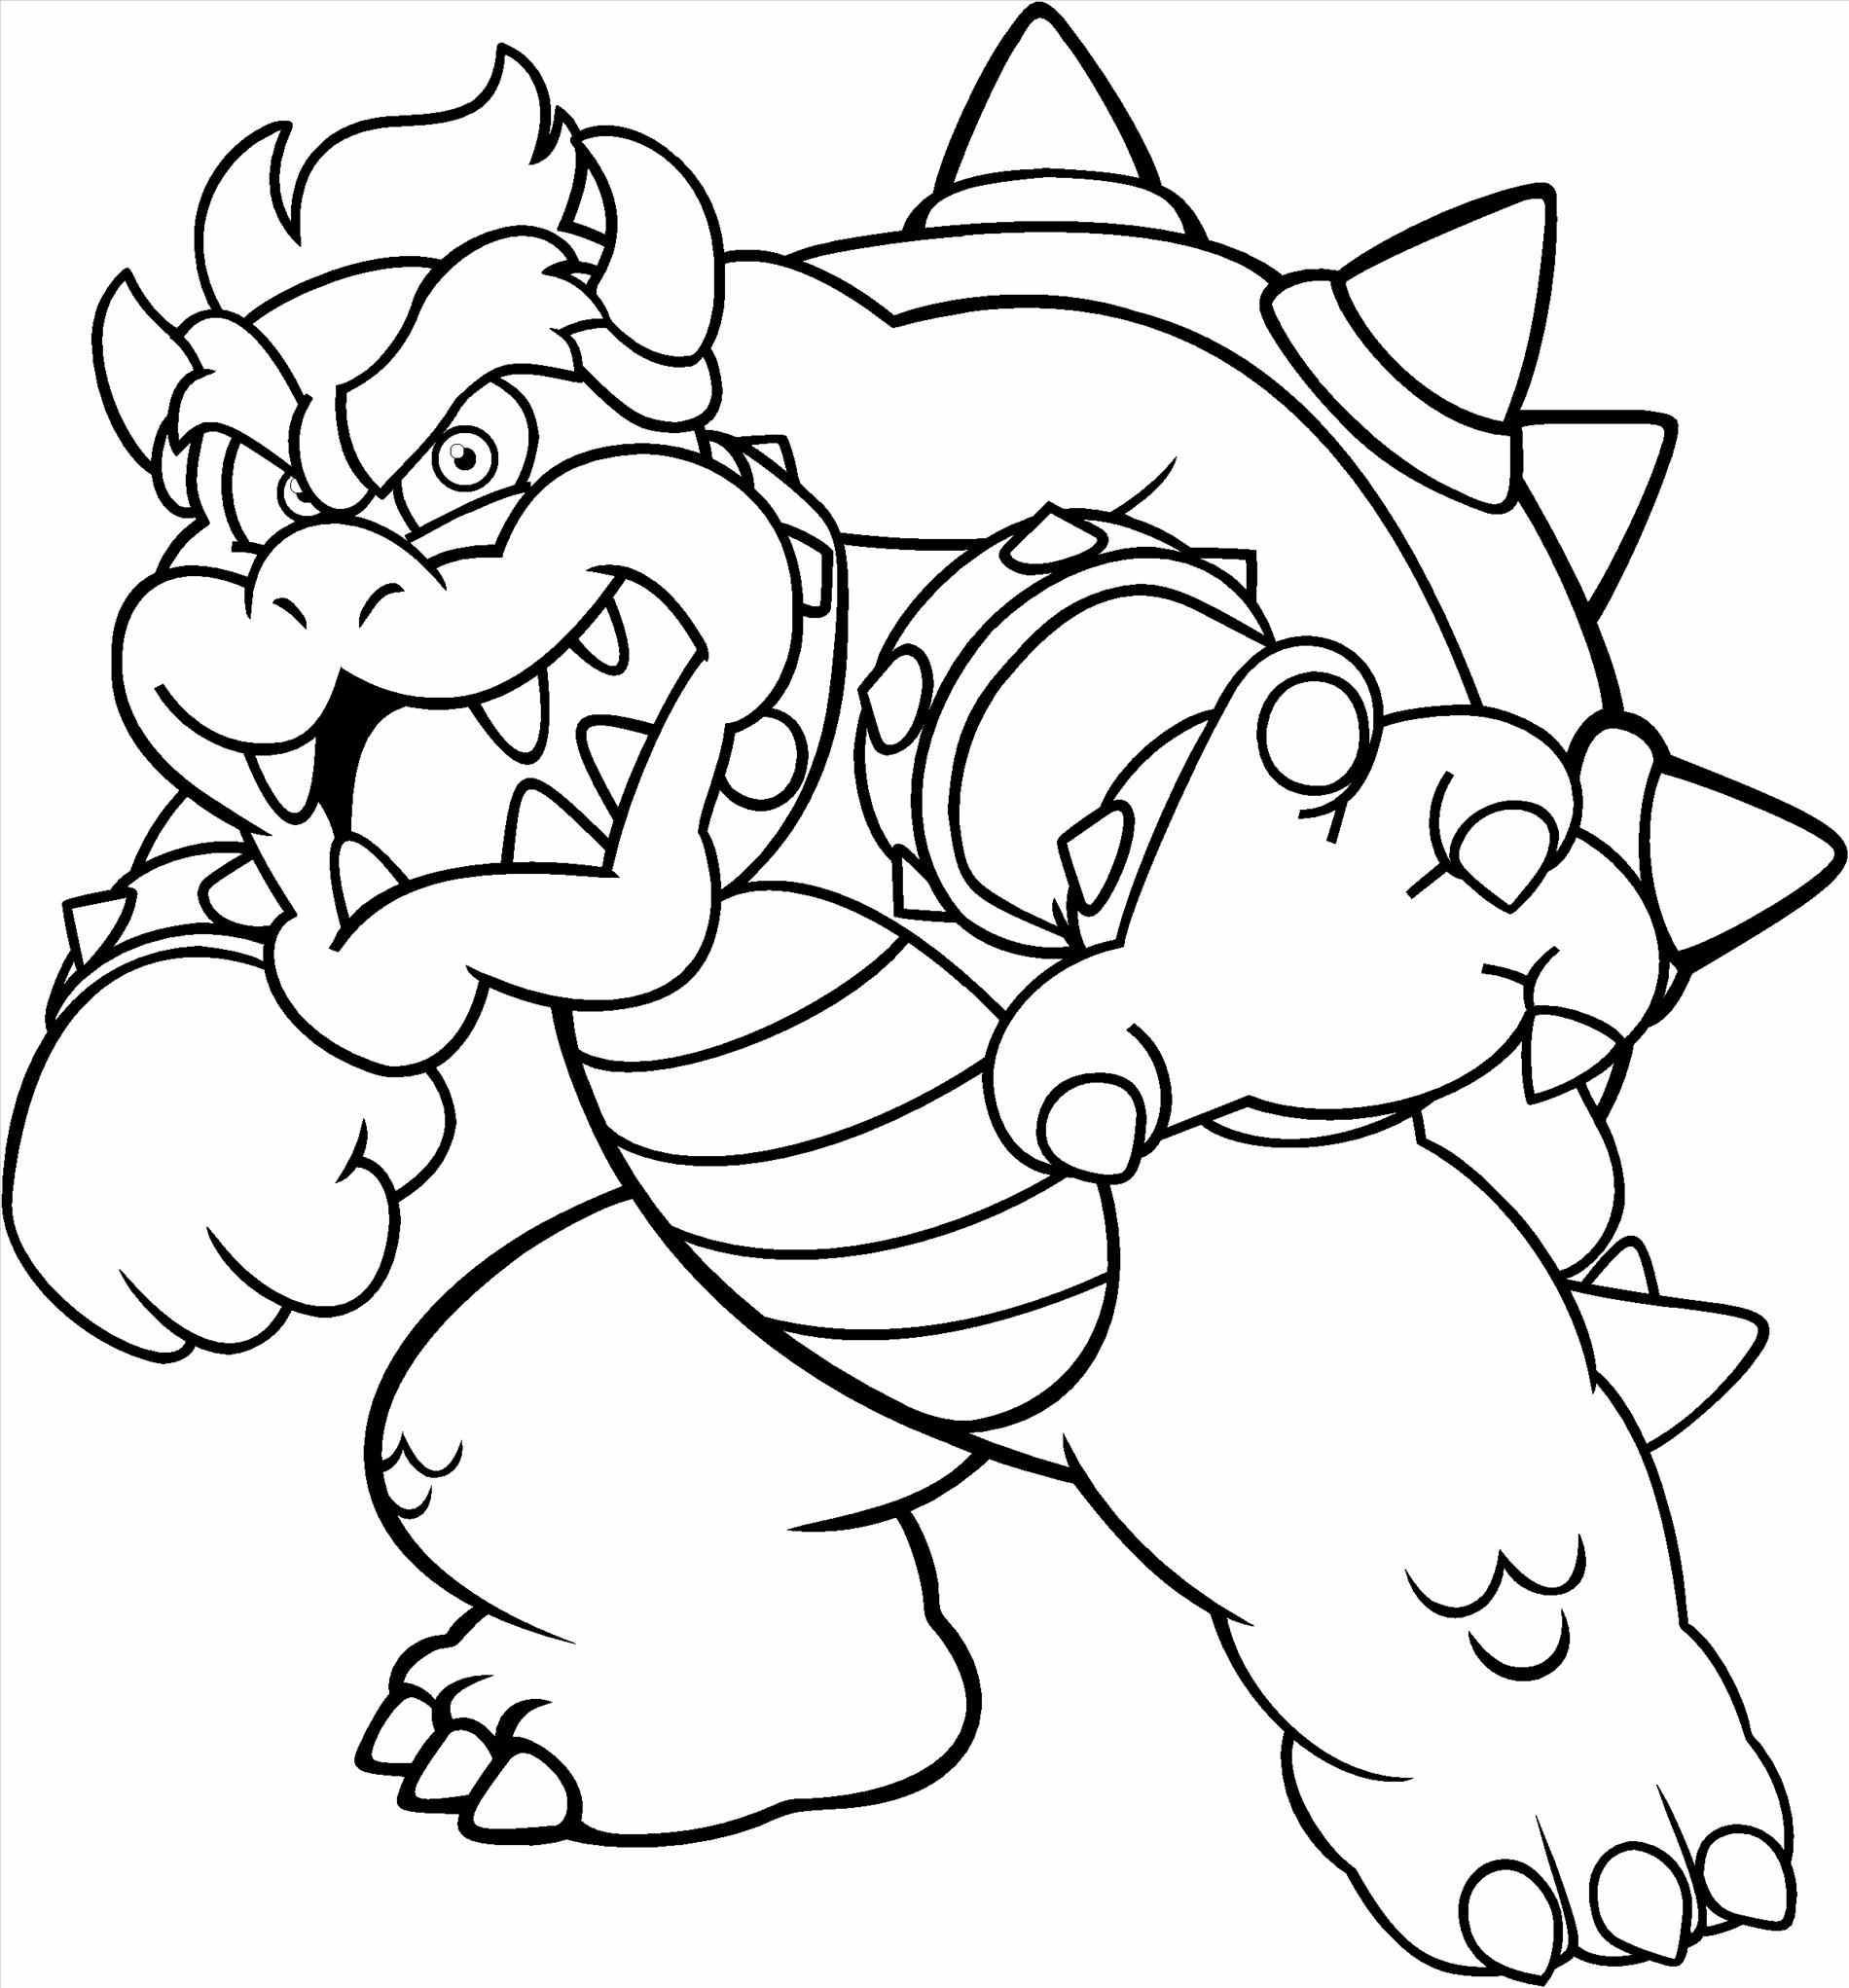 Mario And Bowser Coloring Pages To Print Button Green Url Https Www Dentistmitcham Co Super Mario Coloring Pages Super Coloring Pages Mario Coloring Pages